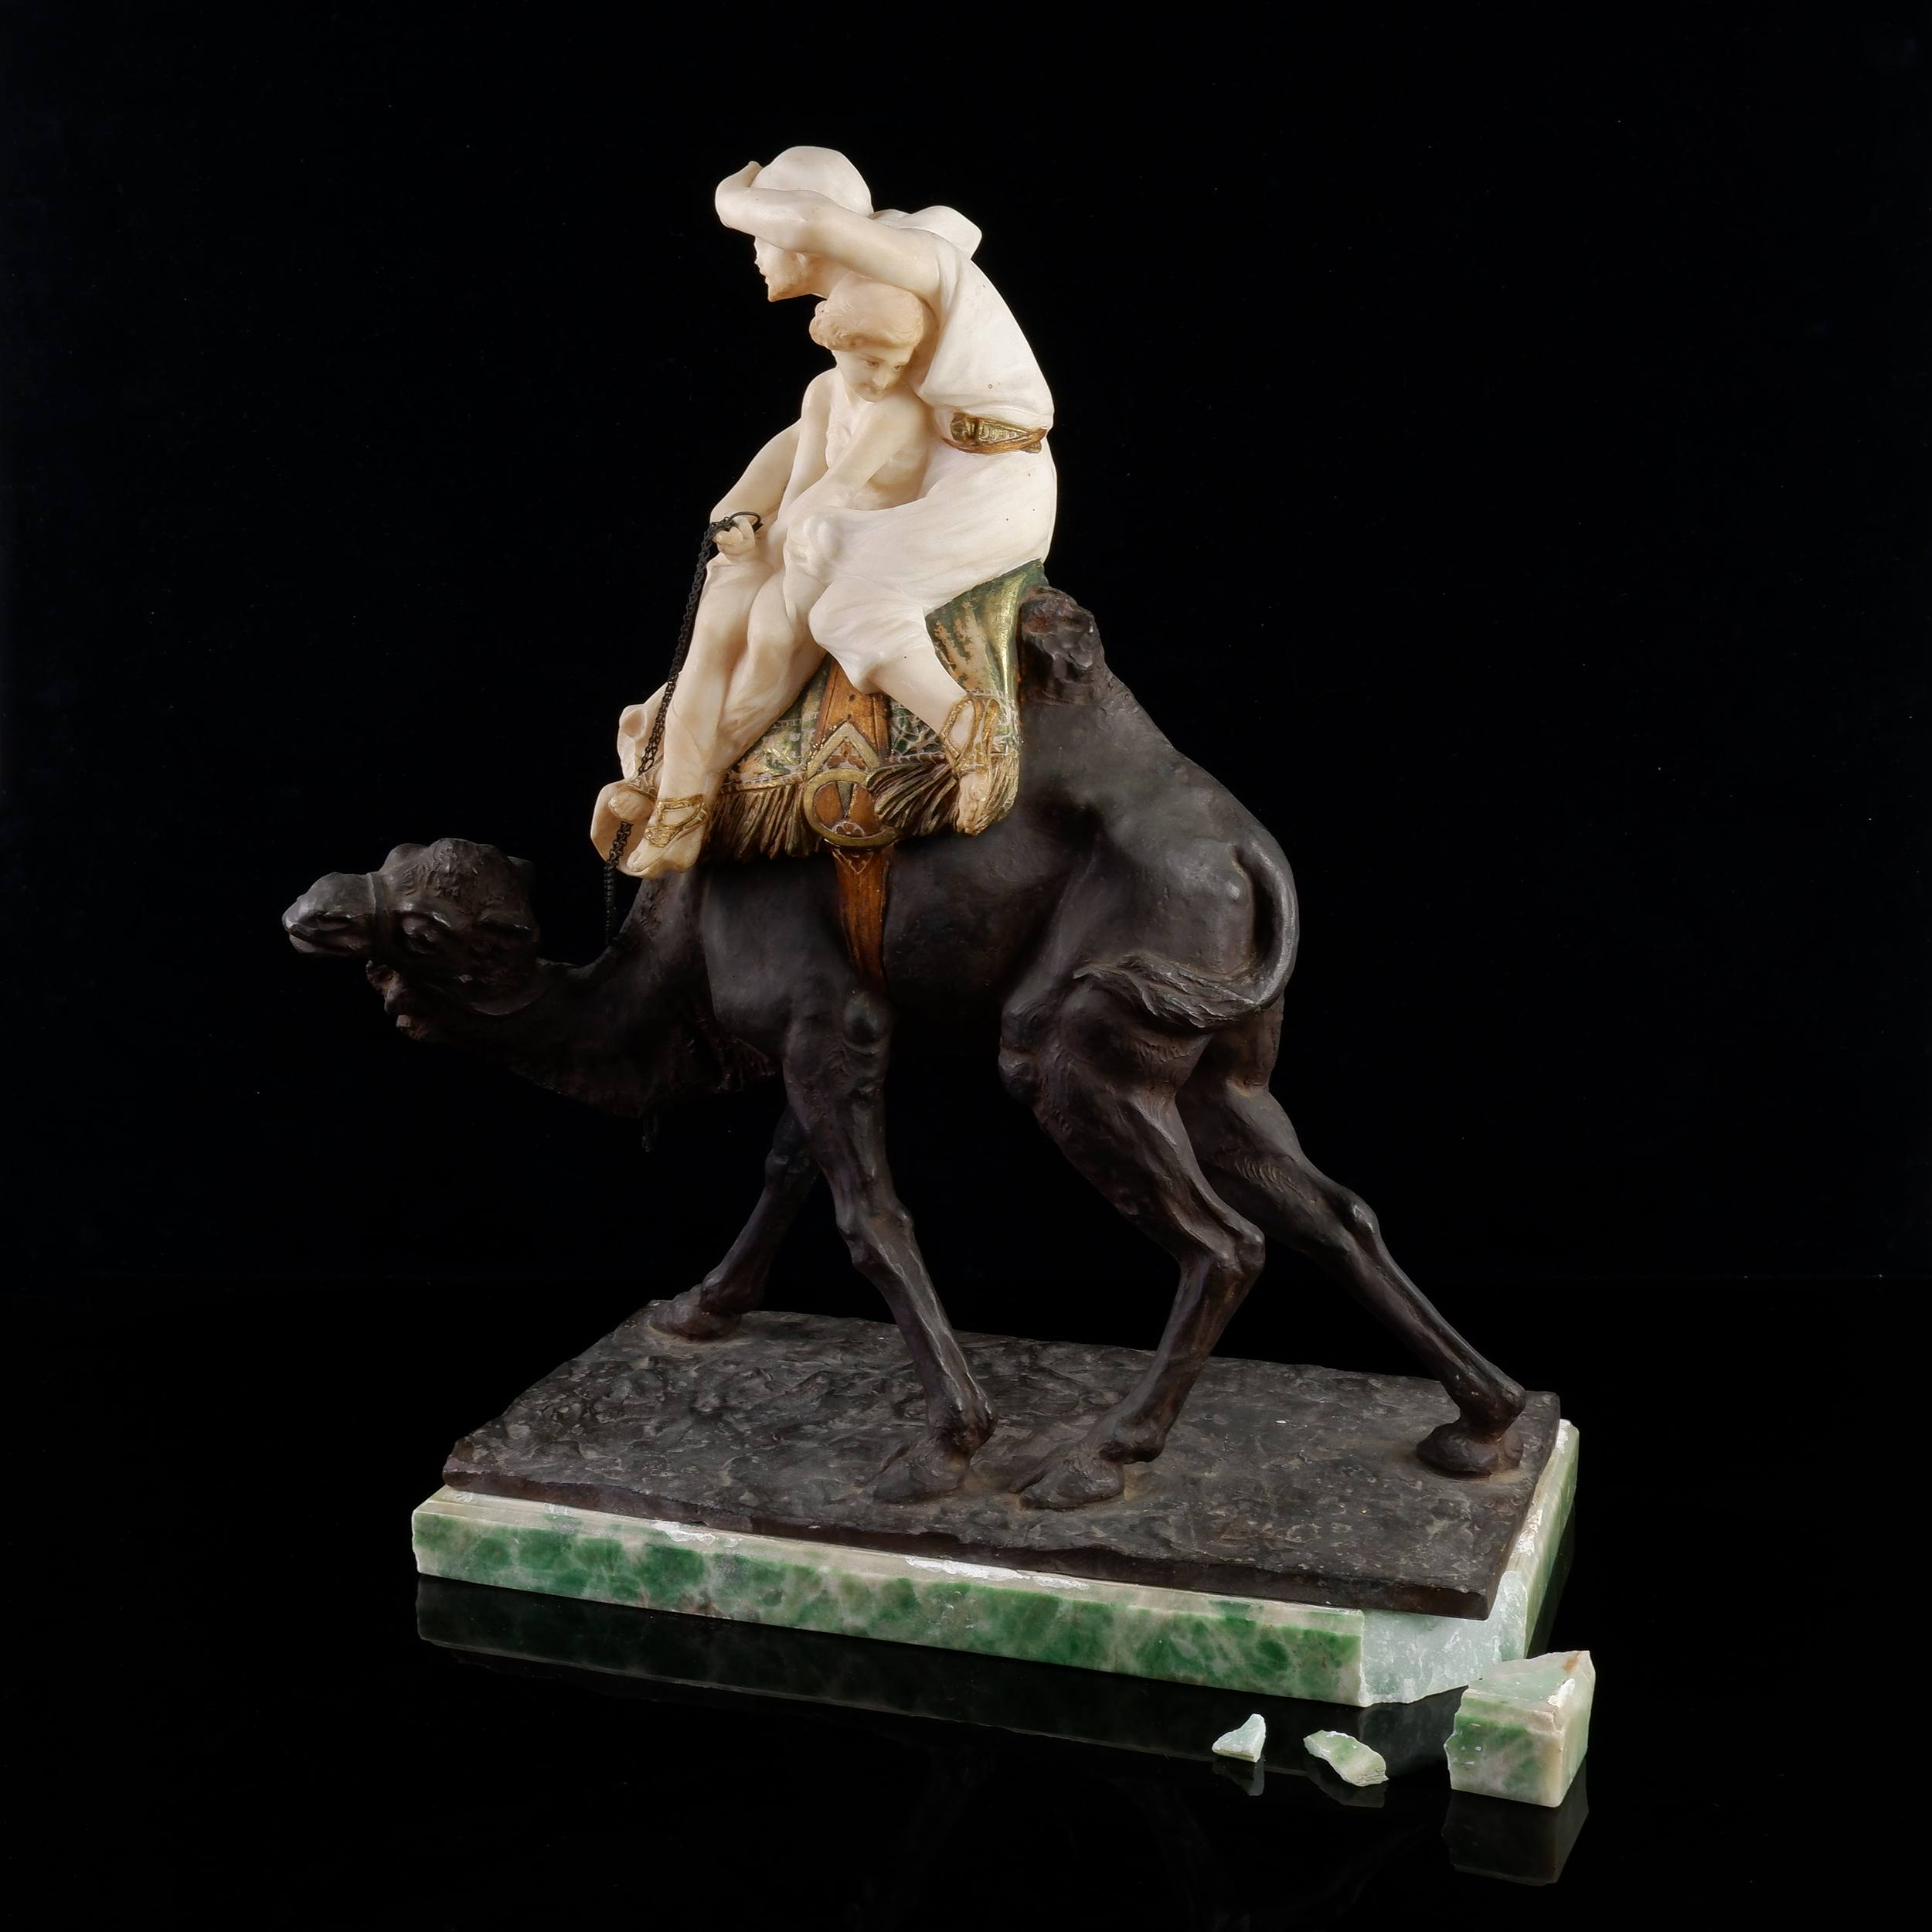 'Emilio Fiaschi (Italian 1858-1941) Orientalist Cold Painted Bronze and Alabaster Model of an Arabian Cameleer, Late 19th Century'